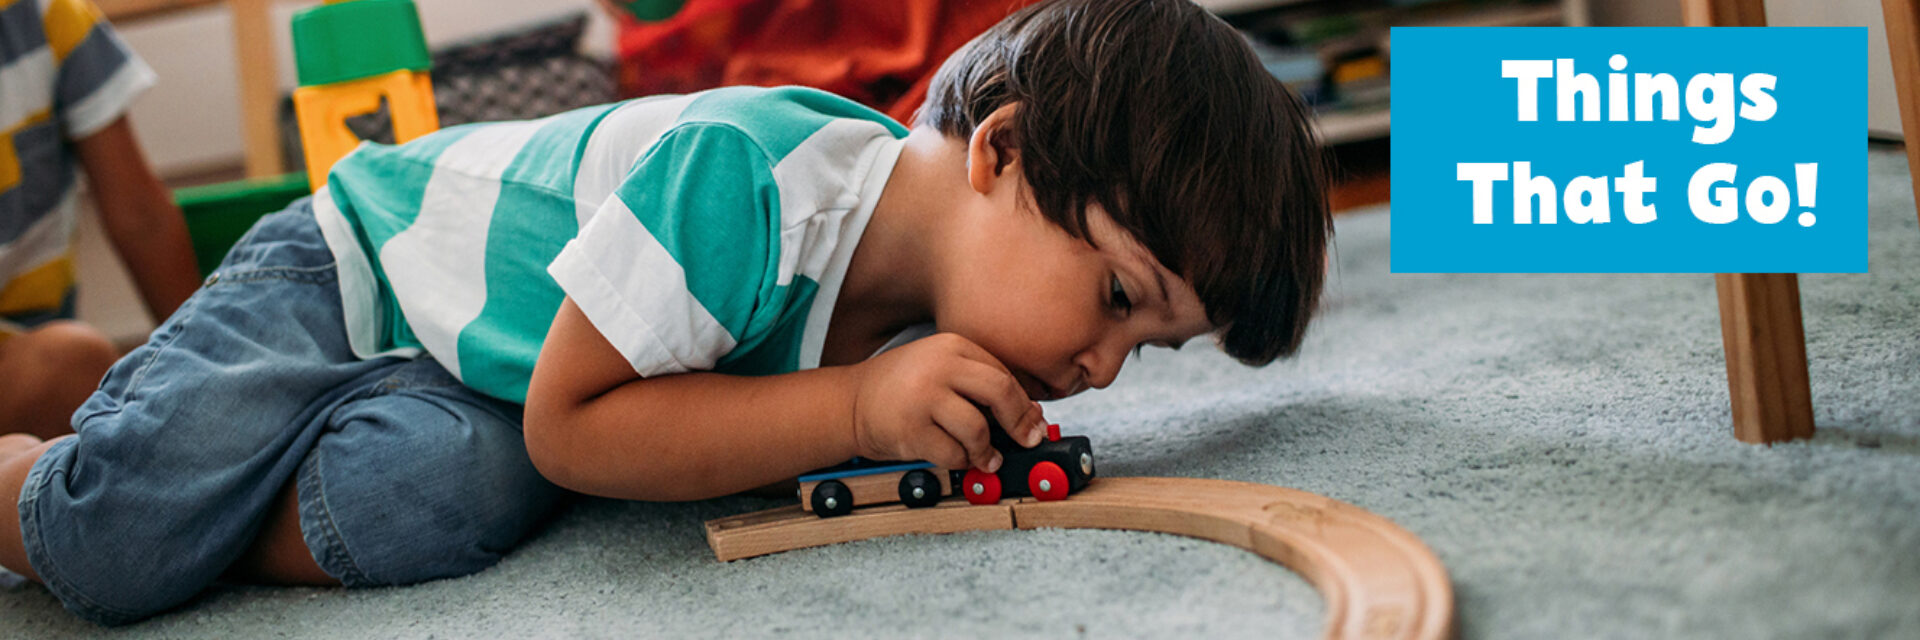 Cars, Planes, & Trains: Learning From Things That Go